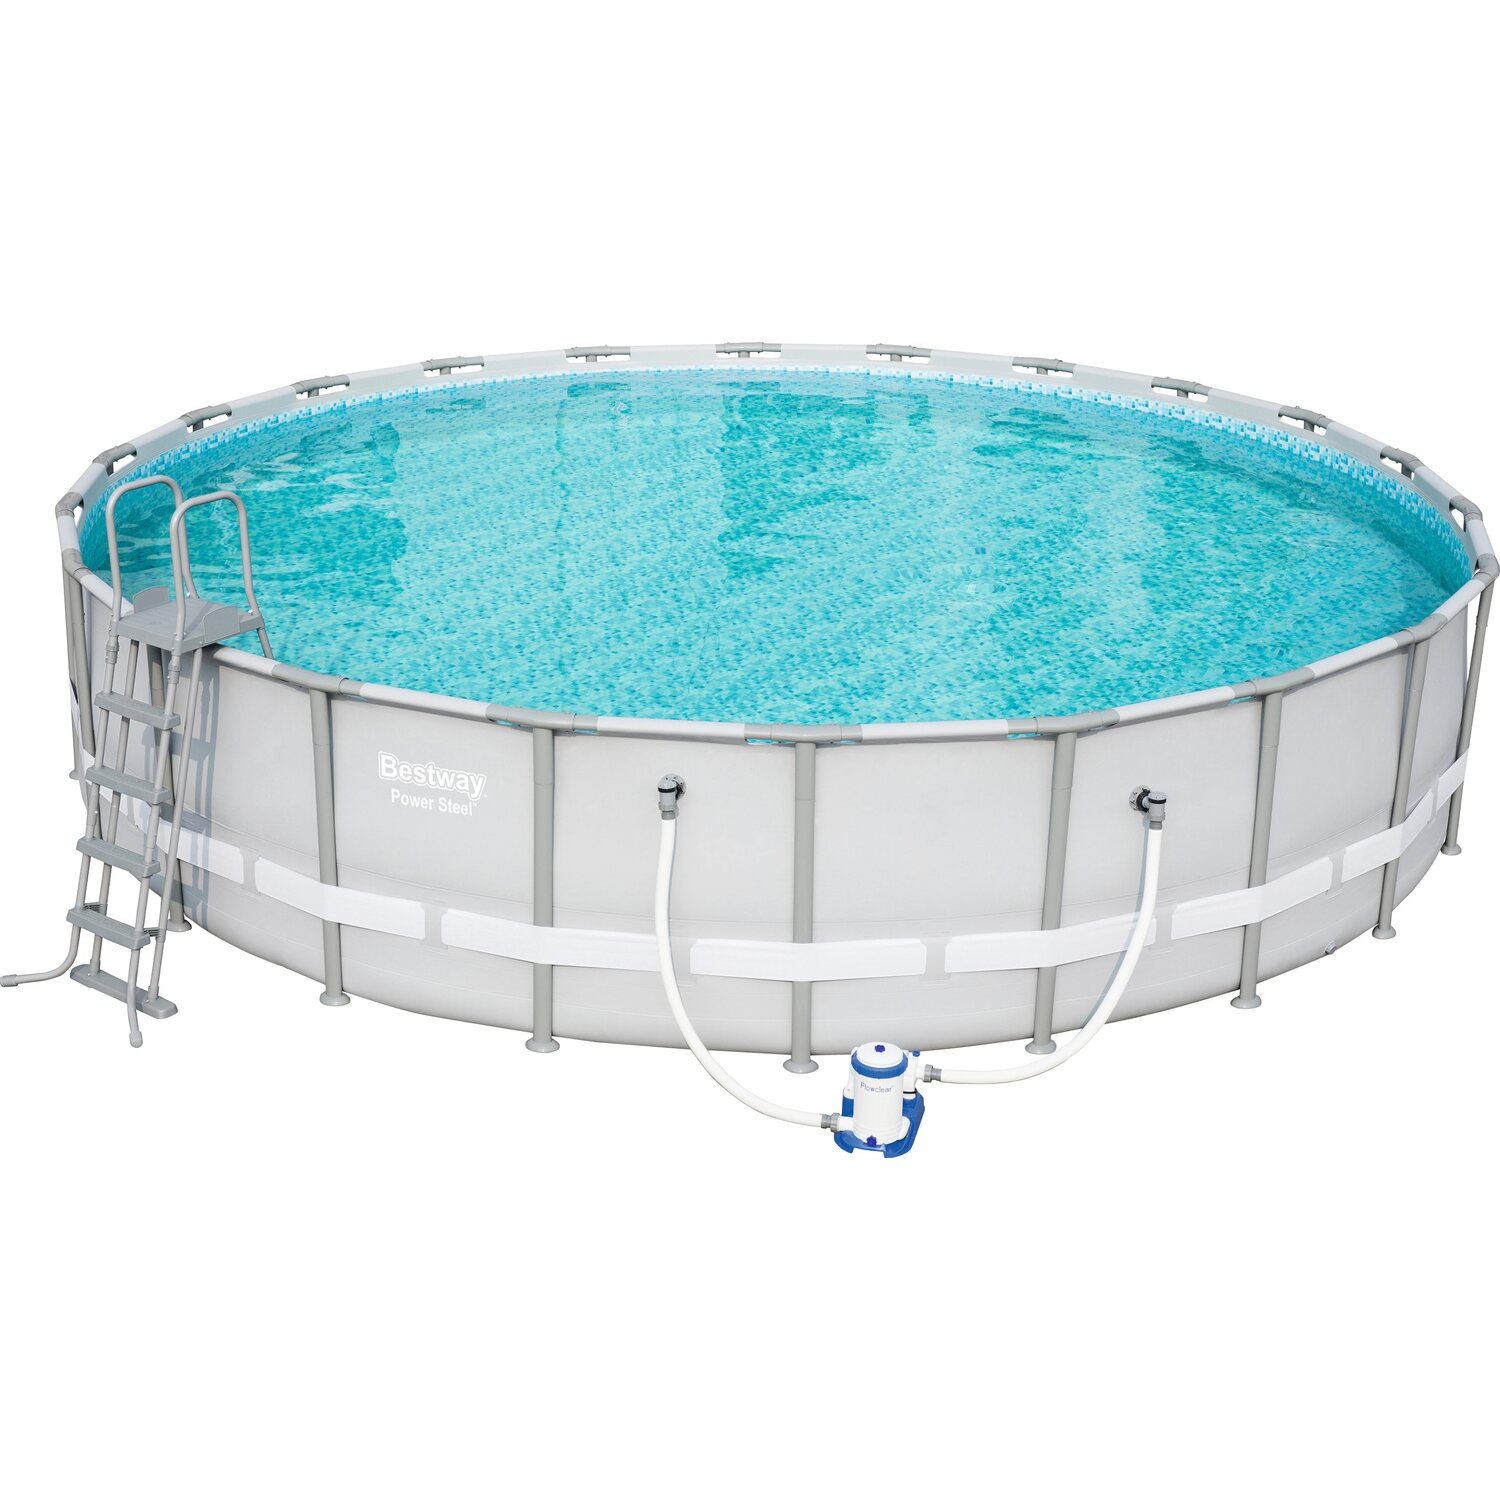 Top Bestway Stahlrahmen-Pool Power Komplett-Set 671 cm x 132 cm kaufen XV08